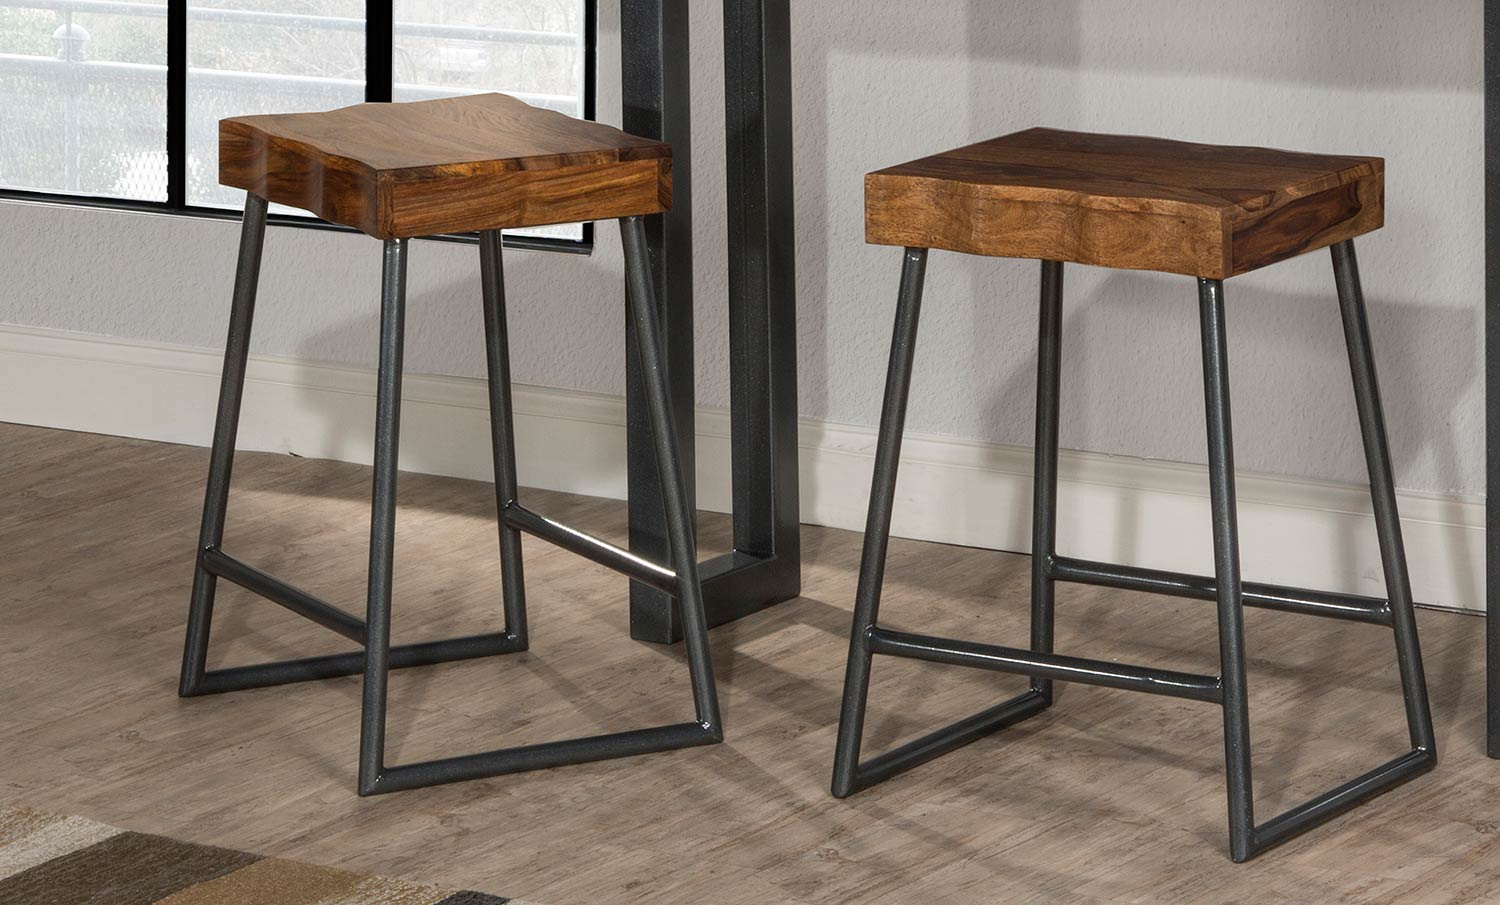 Admirable Hillsdale Emerson Non Swivel Backless Counter Stool Natural Sheesham Wood Gray Metallic Pdpeps Interior Chair Design Pdpepsorg